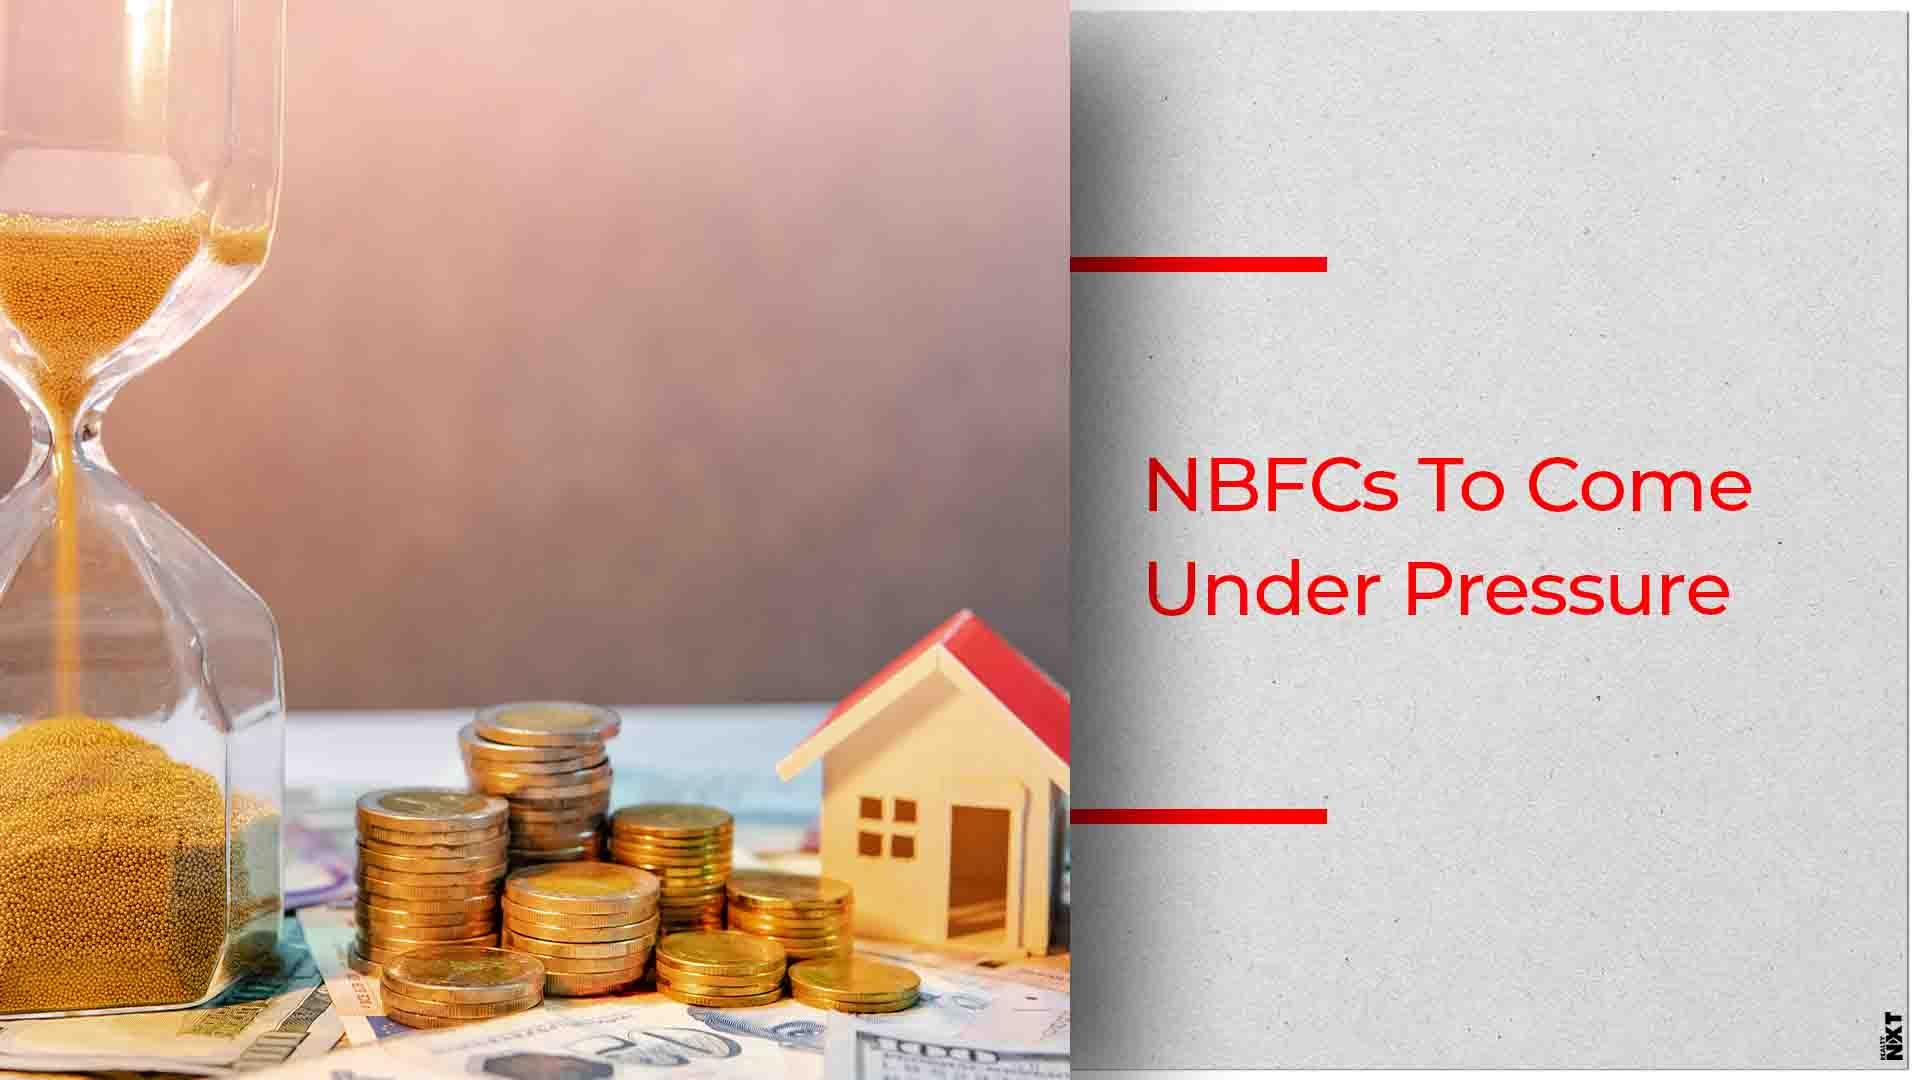 India Ratings Predict Slow Growth for NBFCs